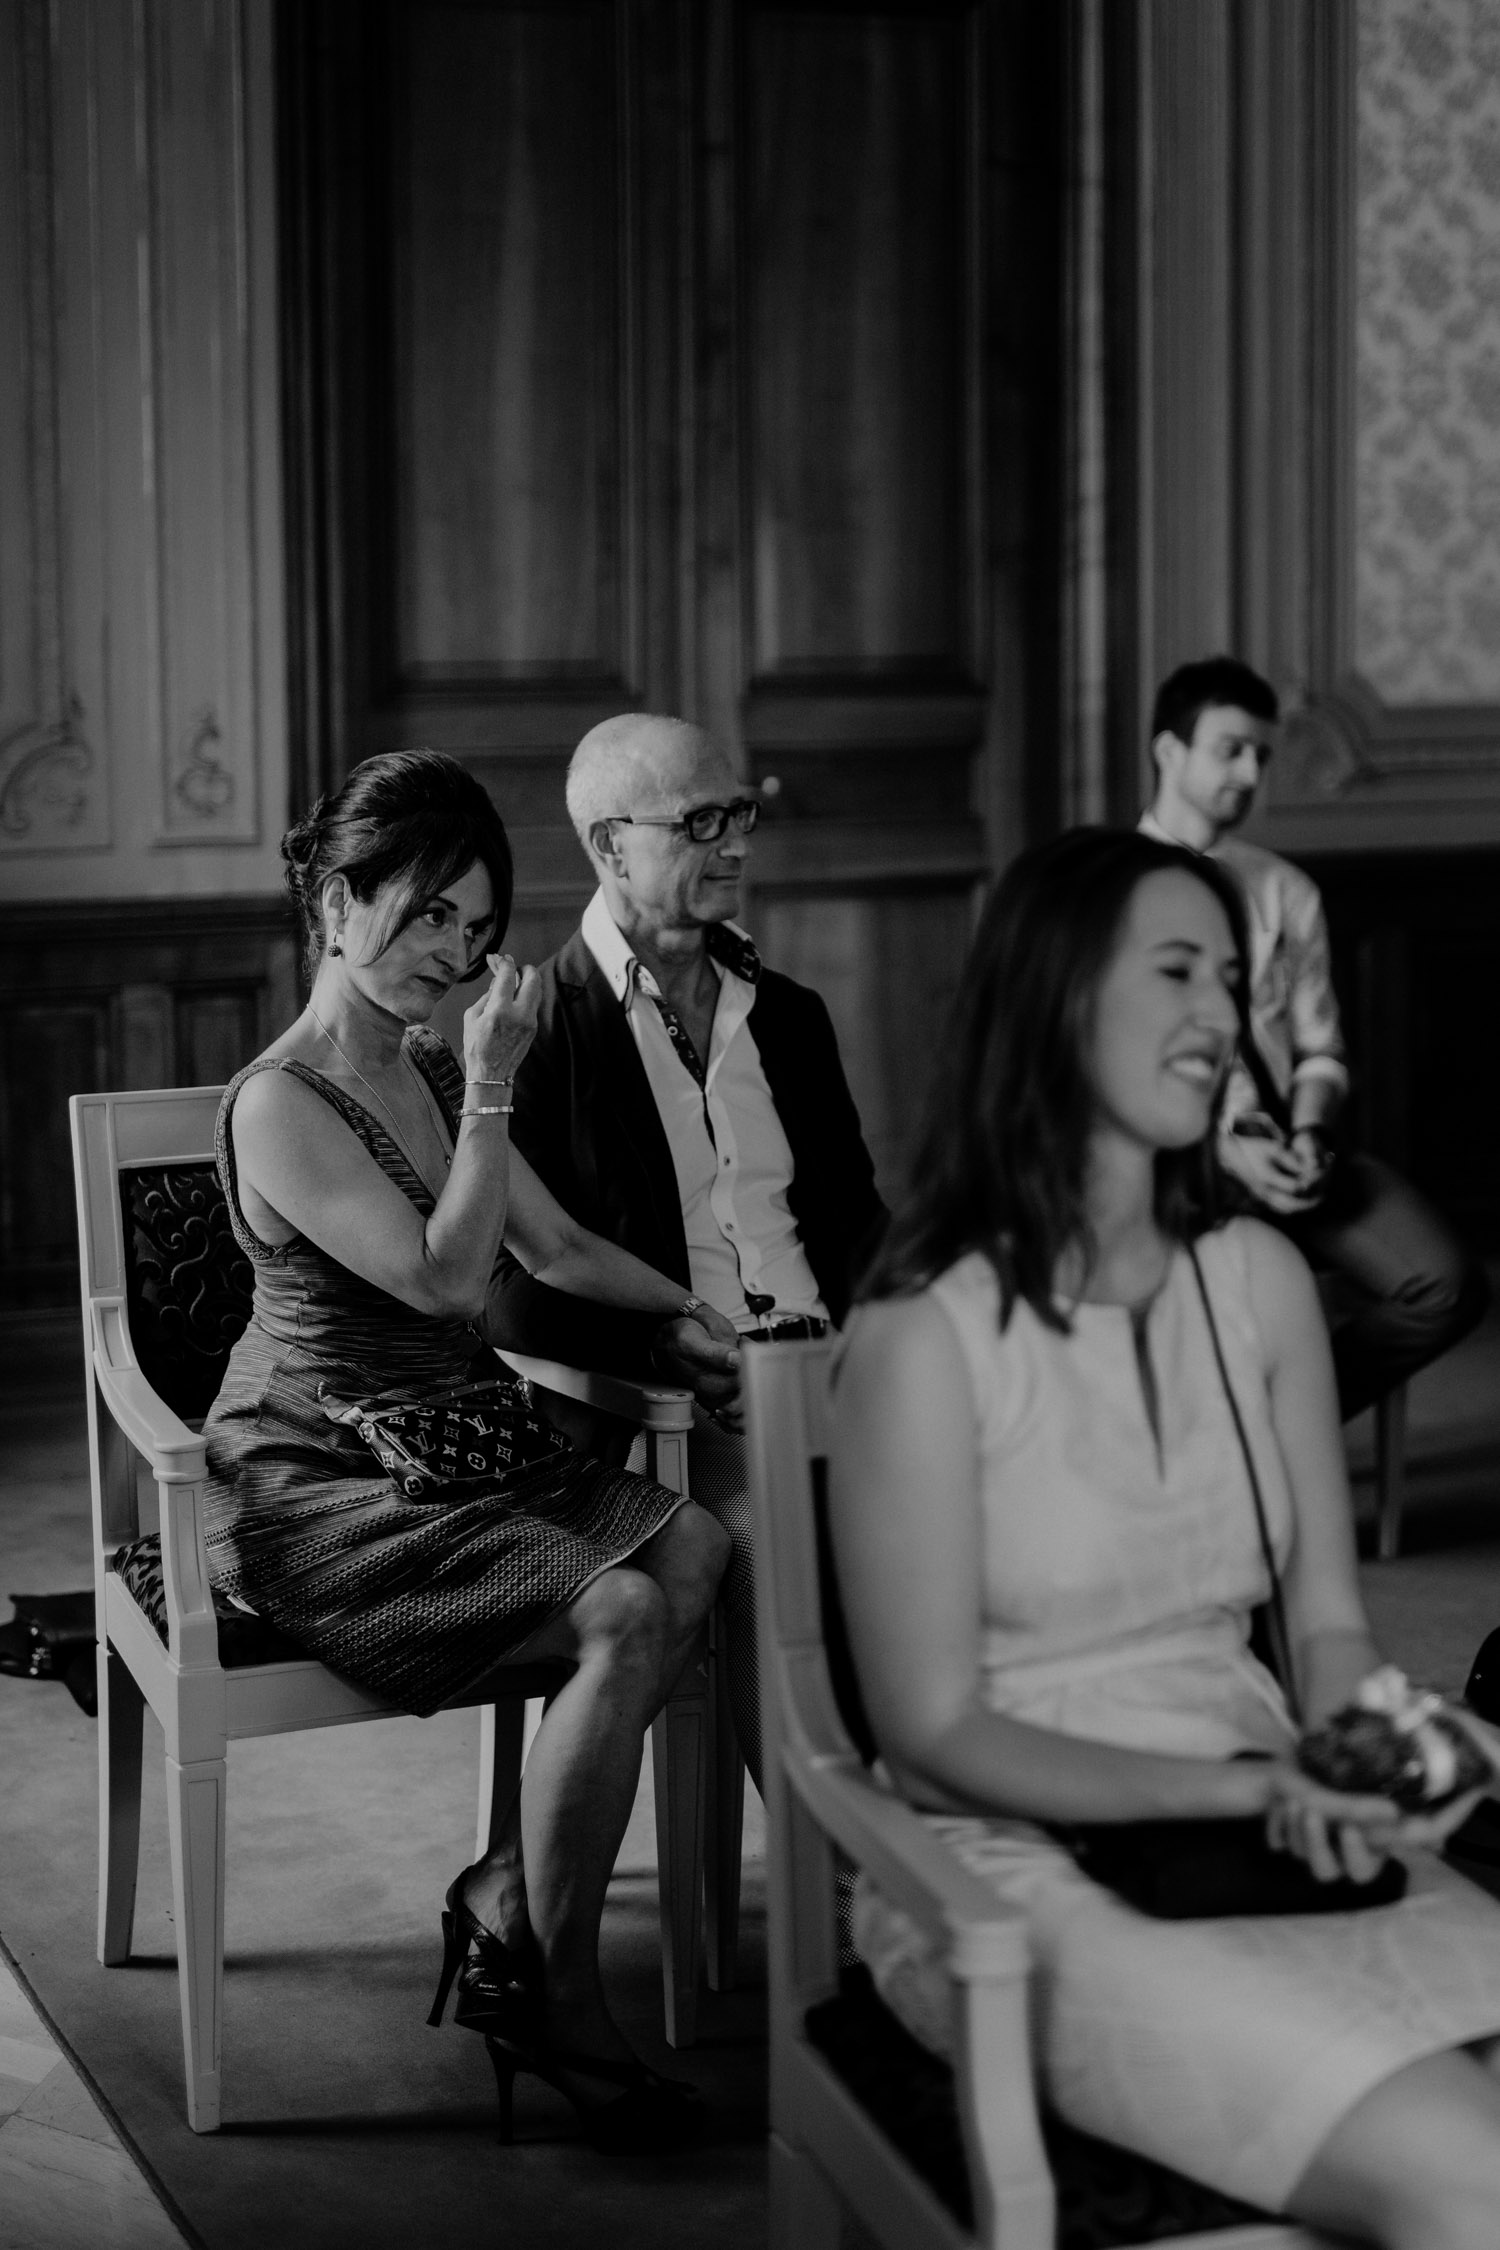 Wedding photographer switzerland basel natural unposed civil wedding old town Basel Minster couple shoot bohemian style documentary mother of the groom